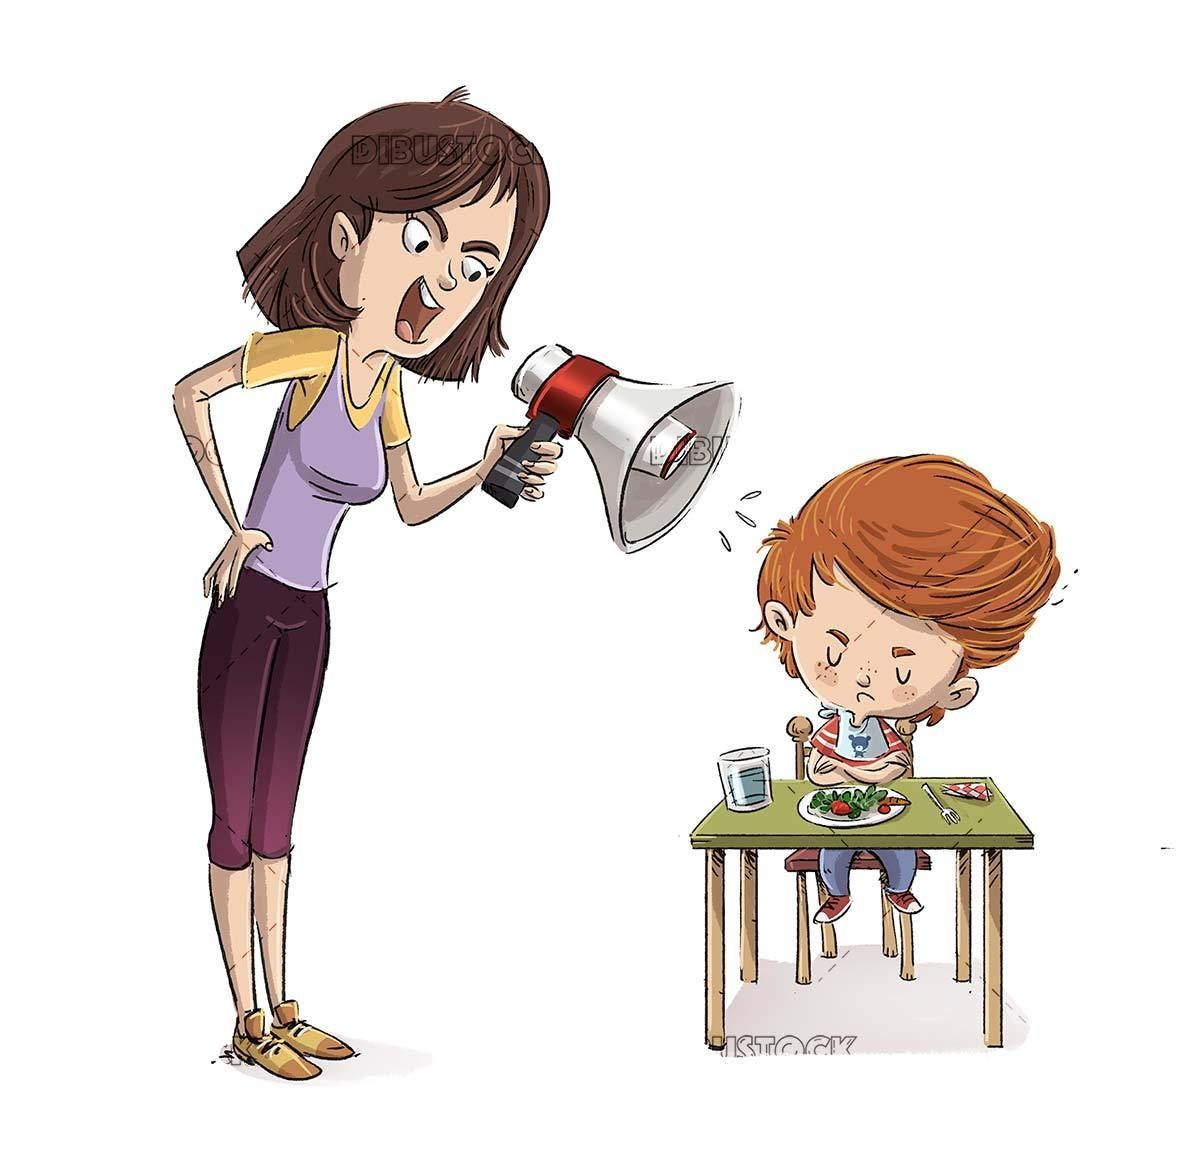 Angry Mother With Her Son For Food In 2020 Character Illustration Cartoon Drawings Family Art